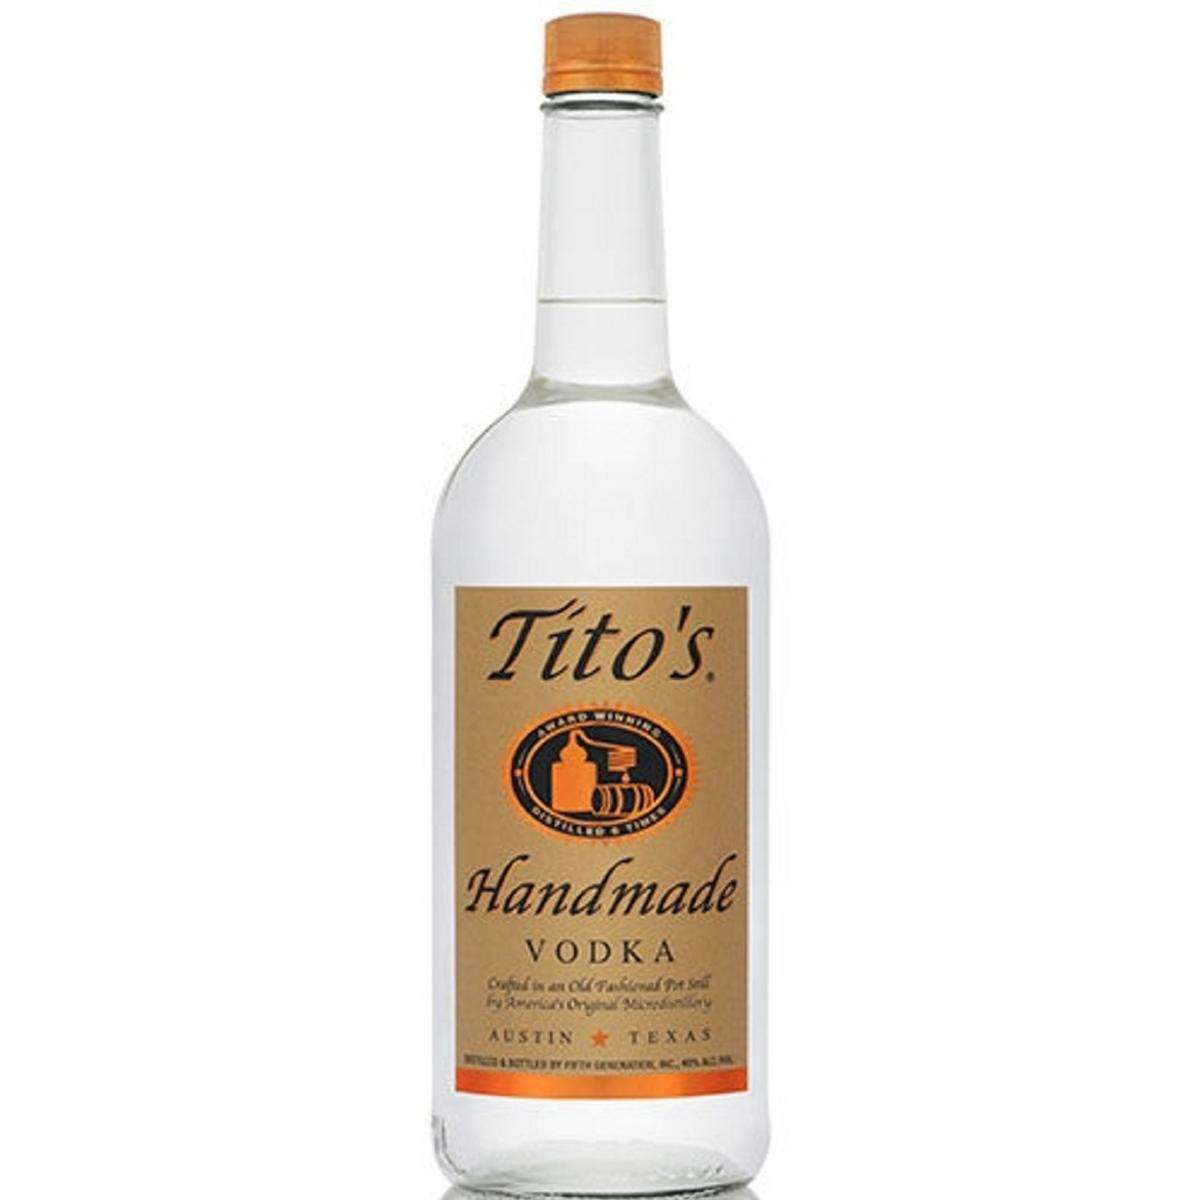 No, you can't use Tito's Vodka to make homemade hand sanitizer